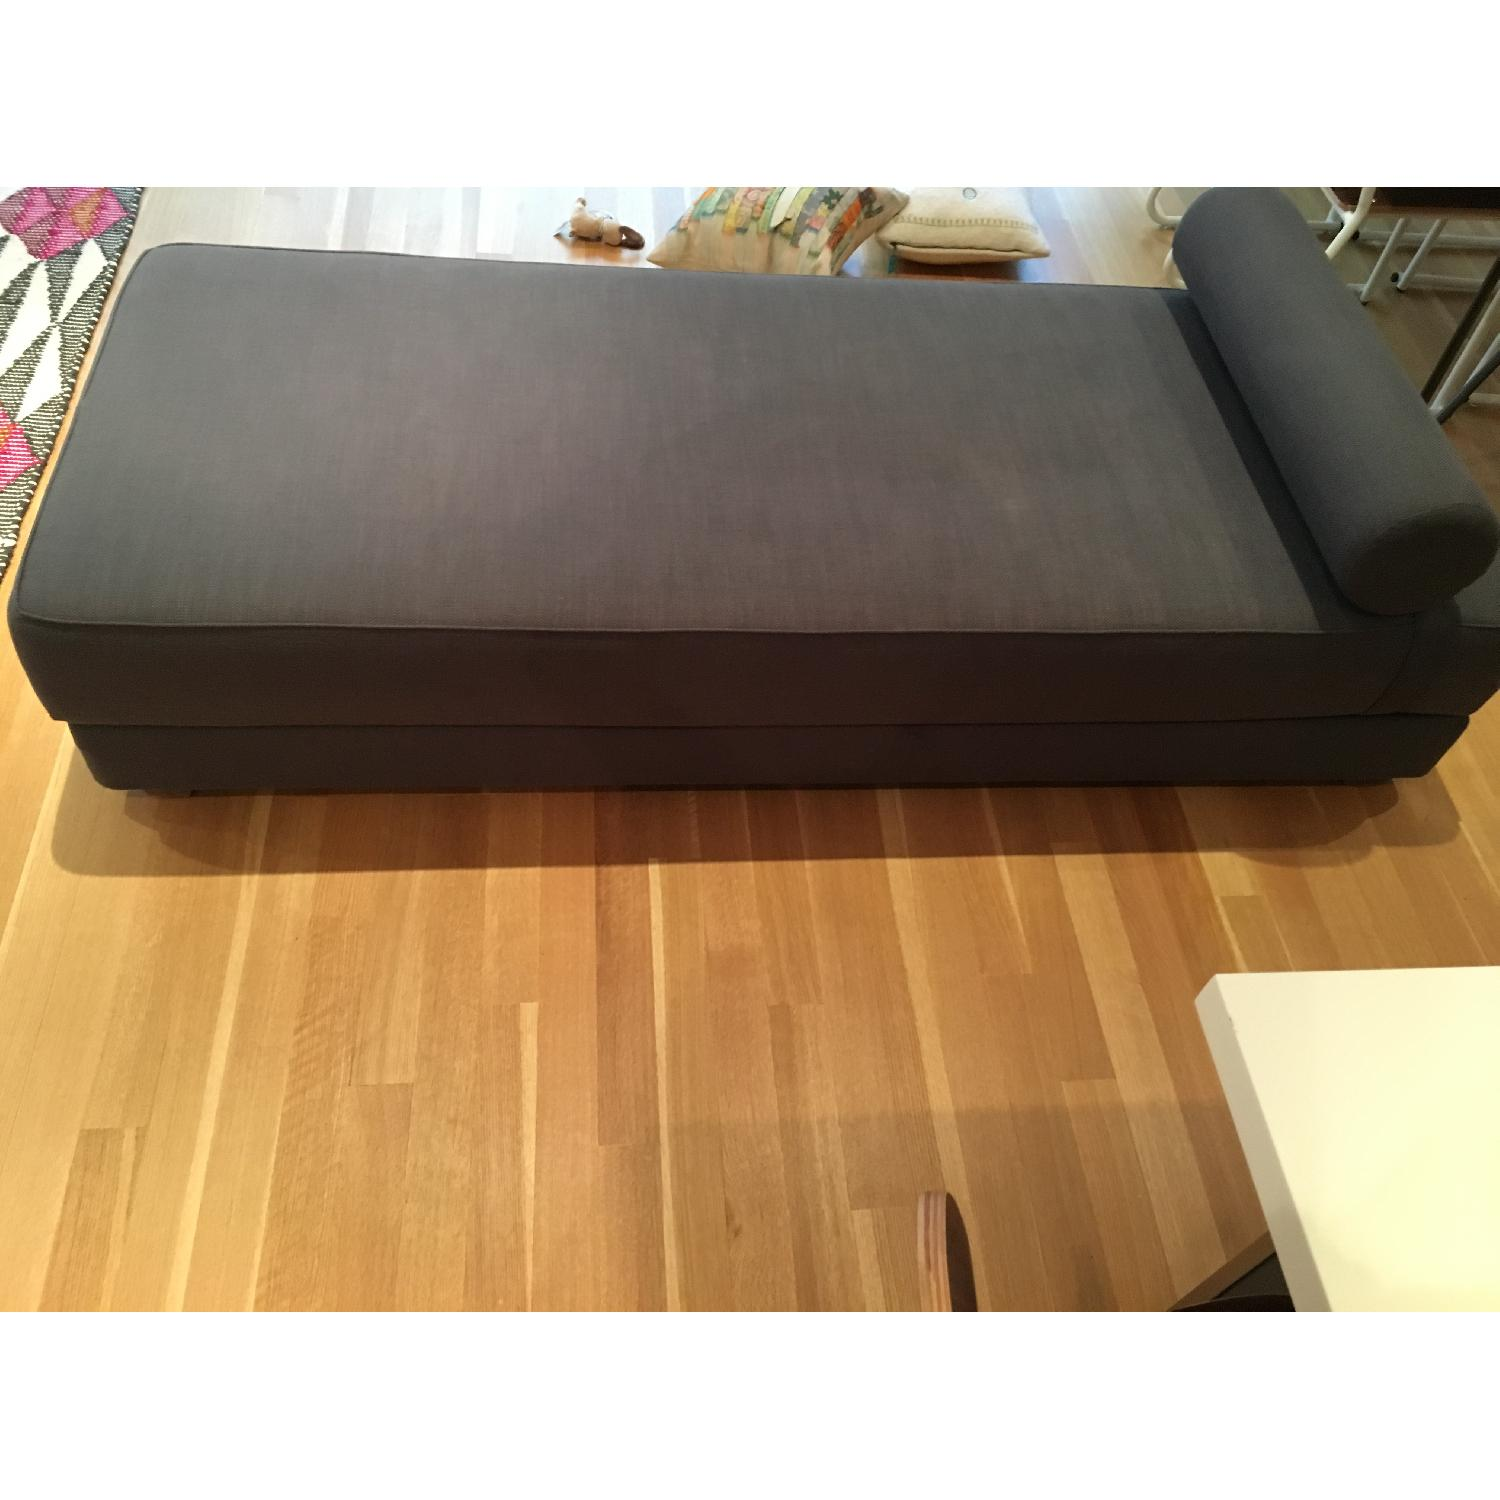 CB2 Lubi Sleeper Daybed - image-5